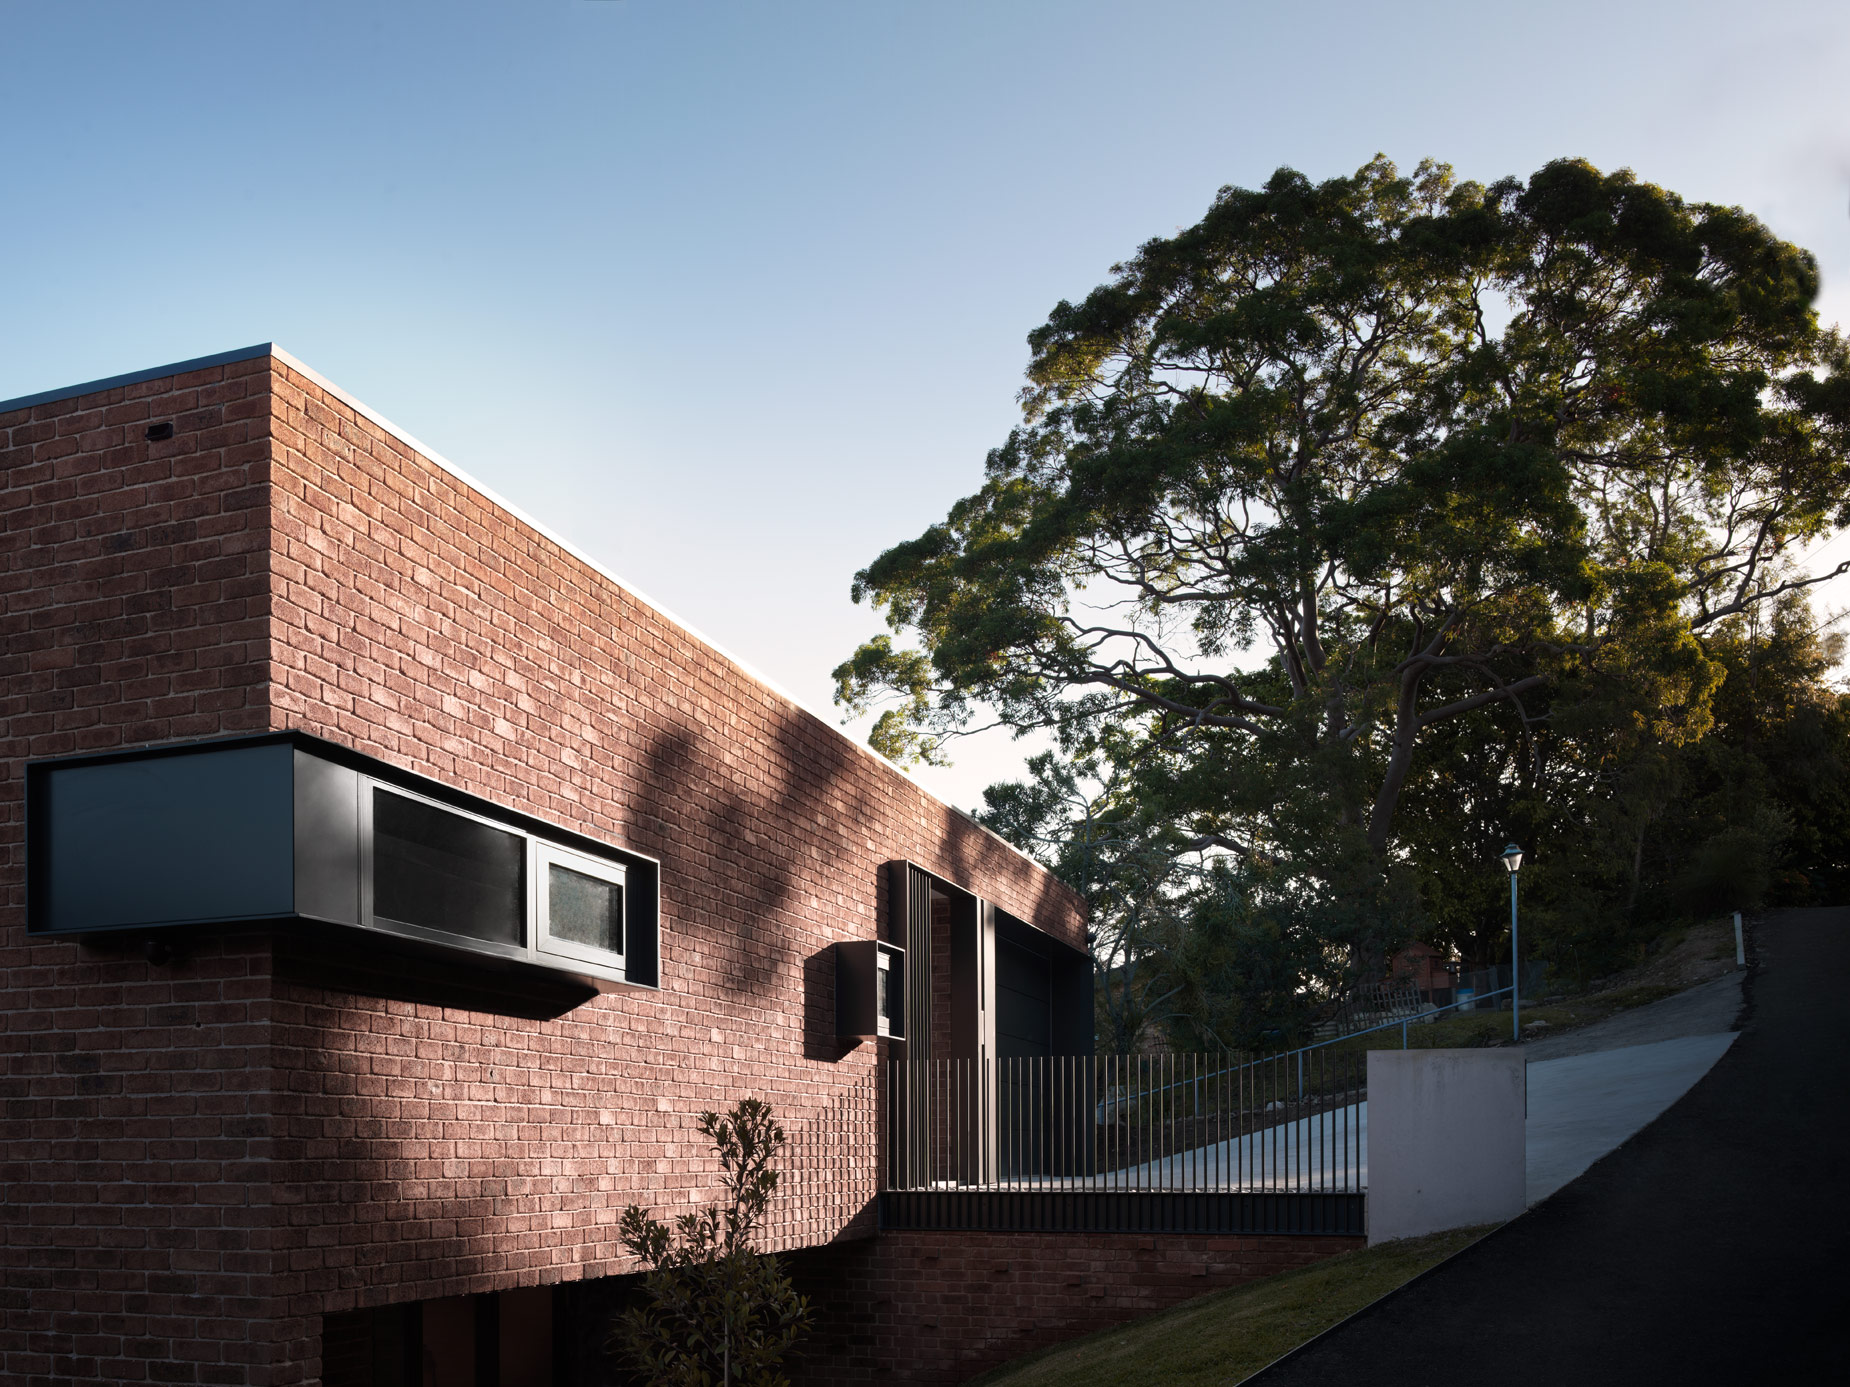 luke-butterly-2020-Cove-Cove-House-by-Dieppe-Design-Architecture-Sydney-NSW-20